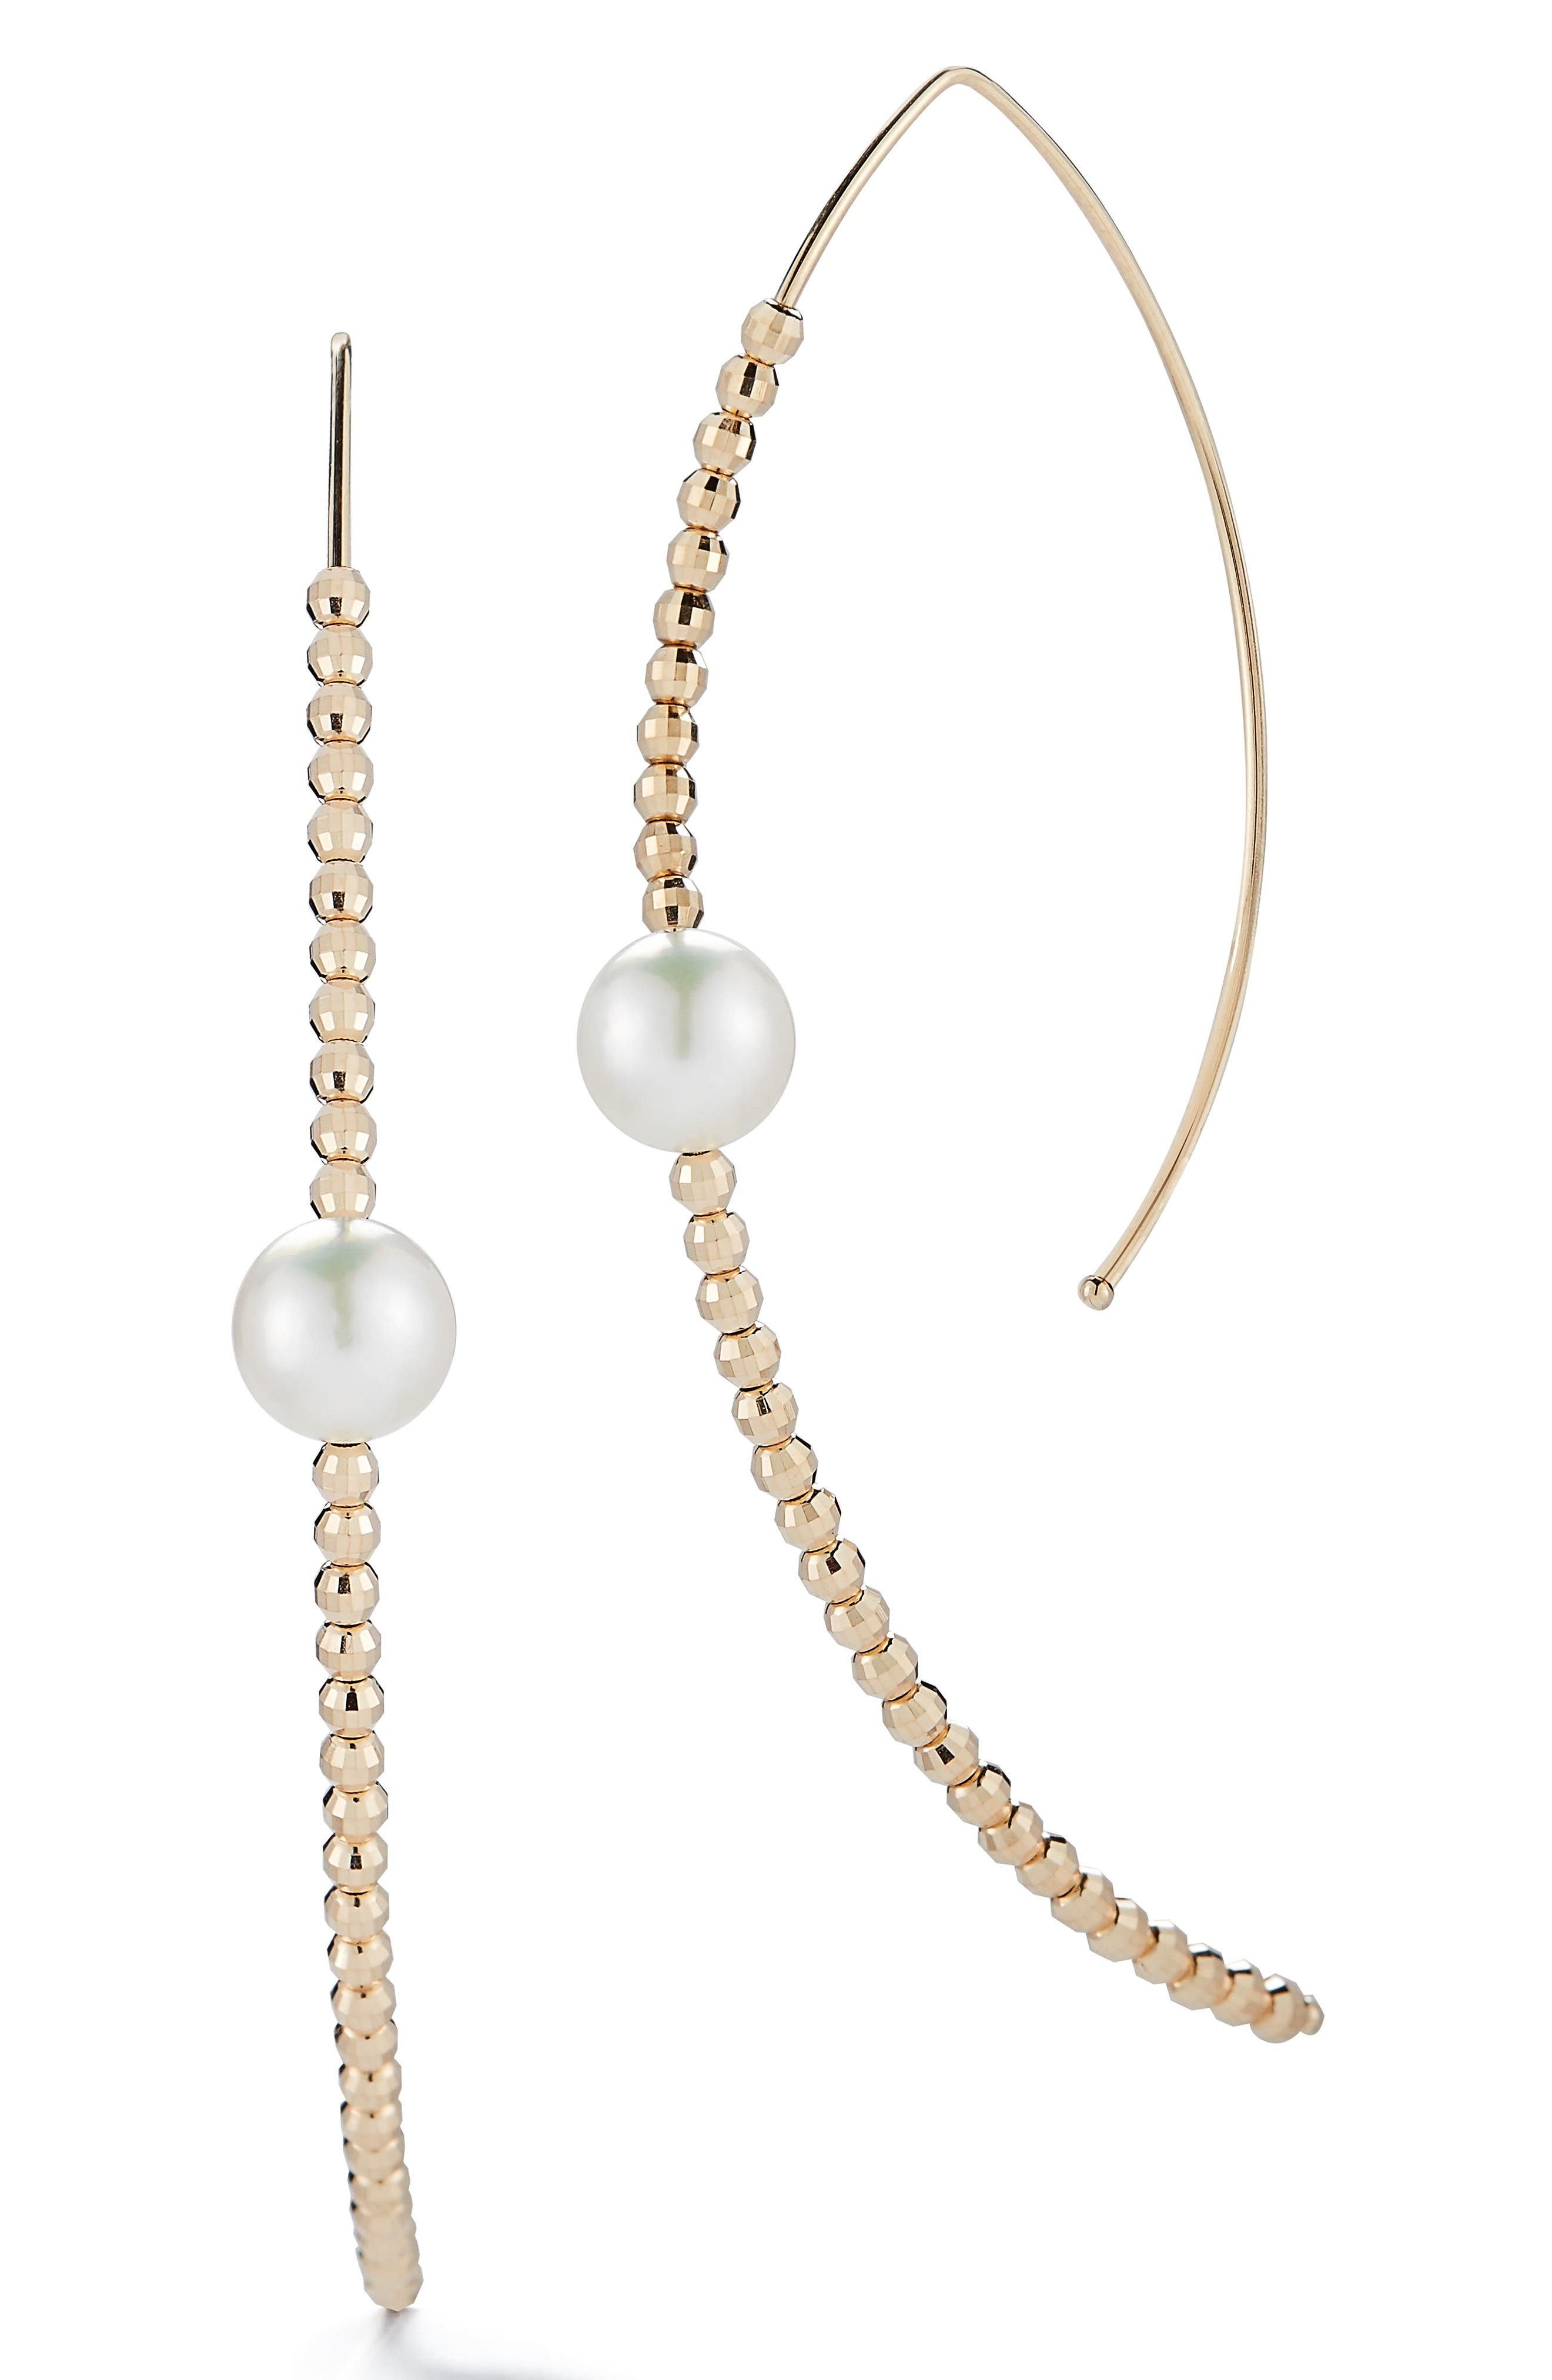 Gold Bead and Genuine Pearl Marquise Hoop Earrings,                             Main thumbnail 1, color,                             Yellow Gold